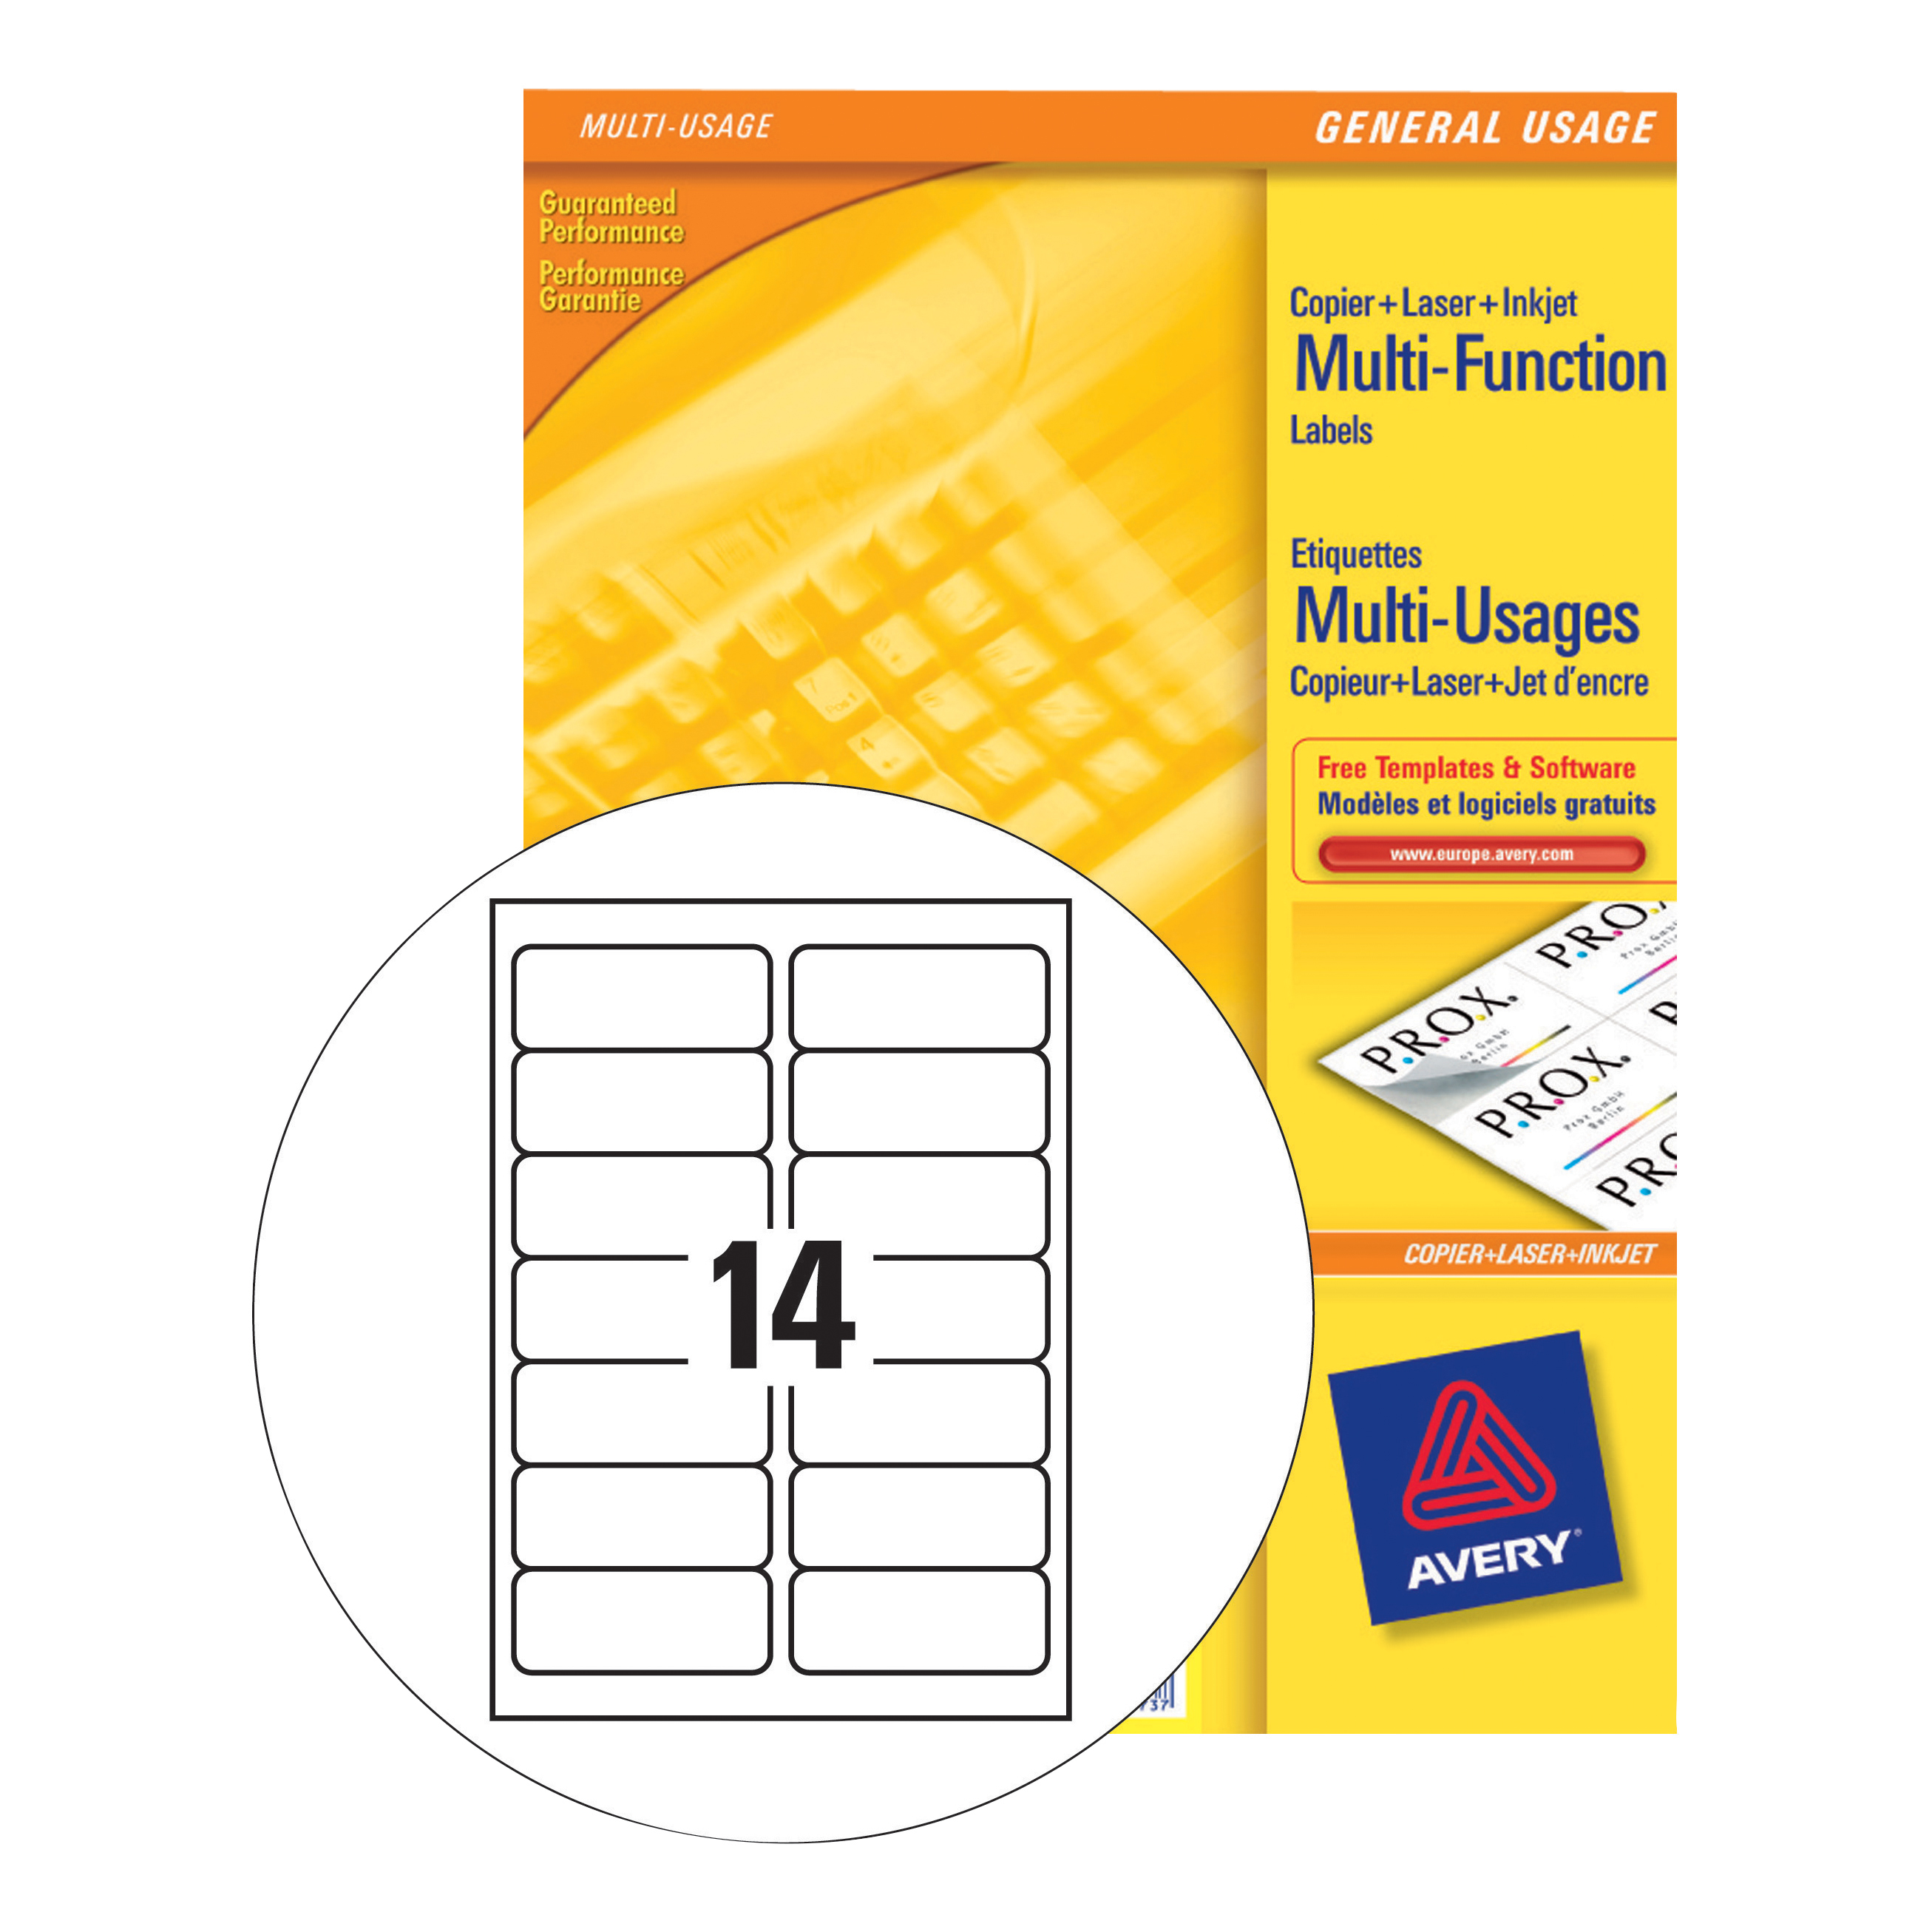 Avery Multipurpose Labels Laser Copier Inkjet 14 per Sheet 105x42.3mm White Ref 3653 [1400 Labels]